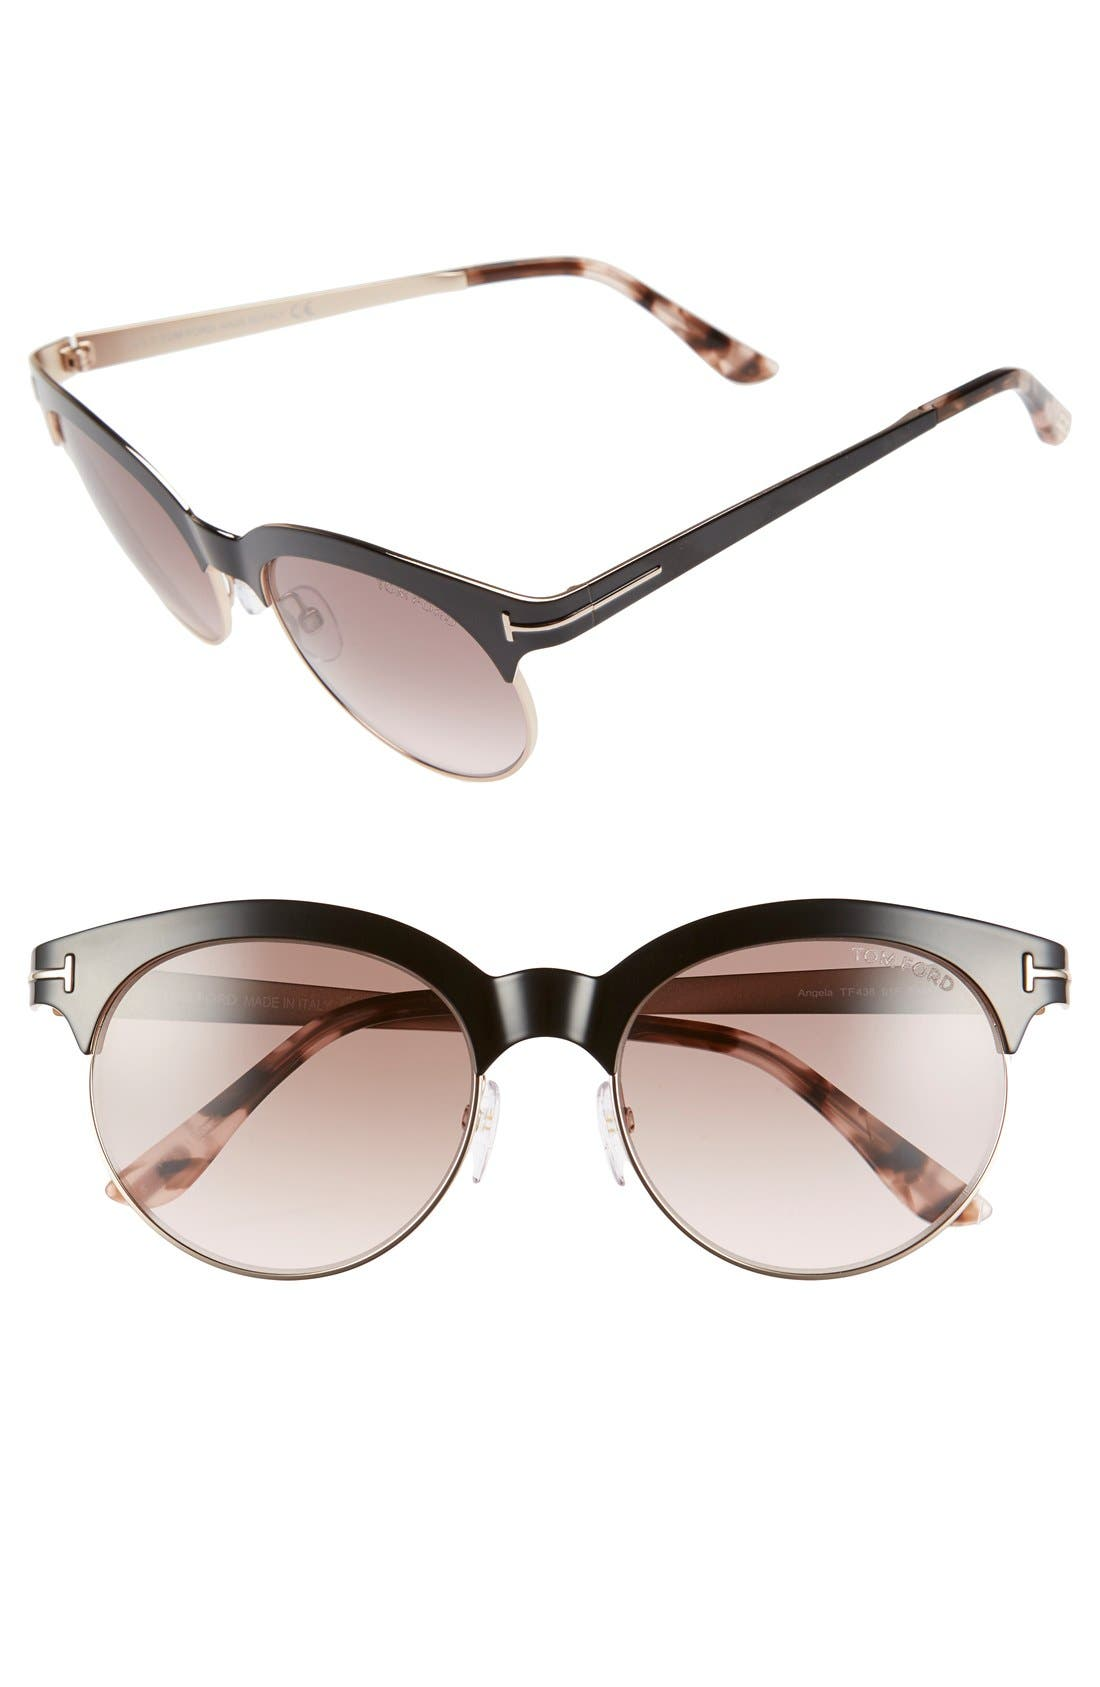 Alternate Image 1 Selected - Tom Ford 'Angela' 53mm Retro Sunglasses